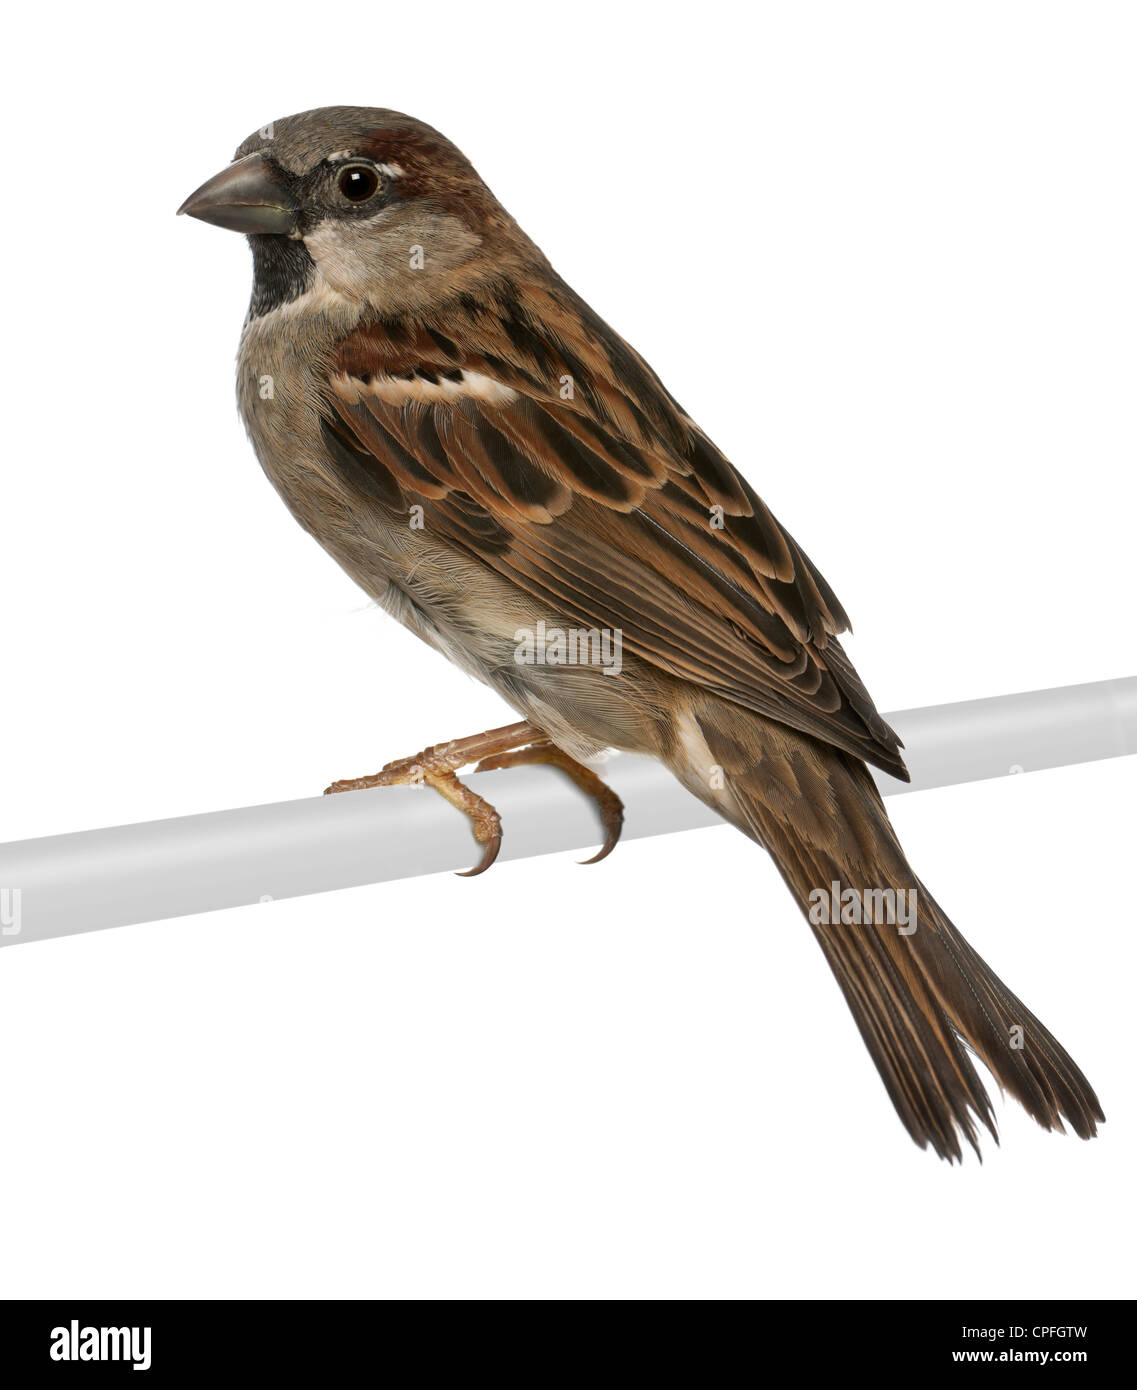 Male House Sparrow, Passer domesticus, 5 months old, perching against white background - Stock Image